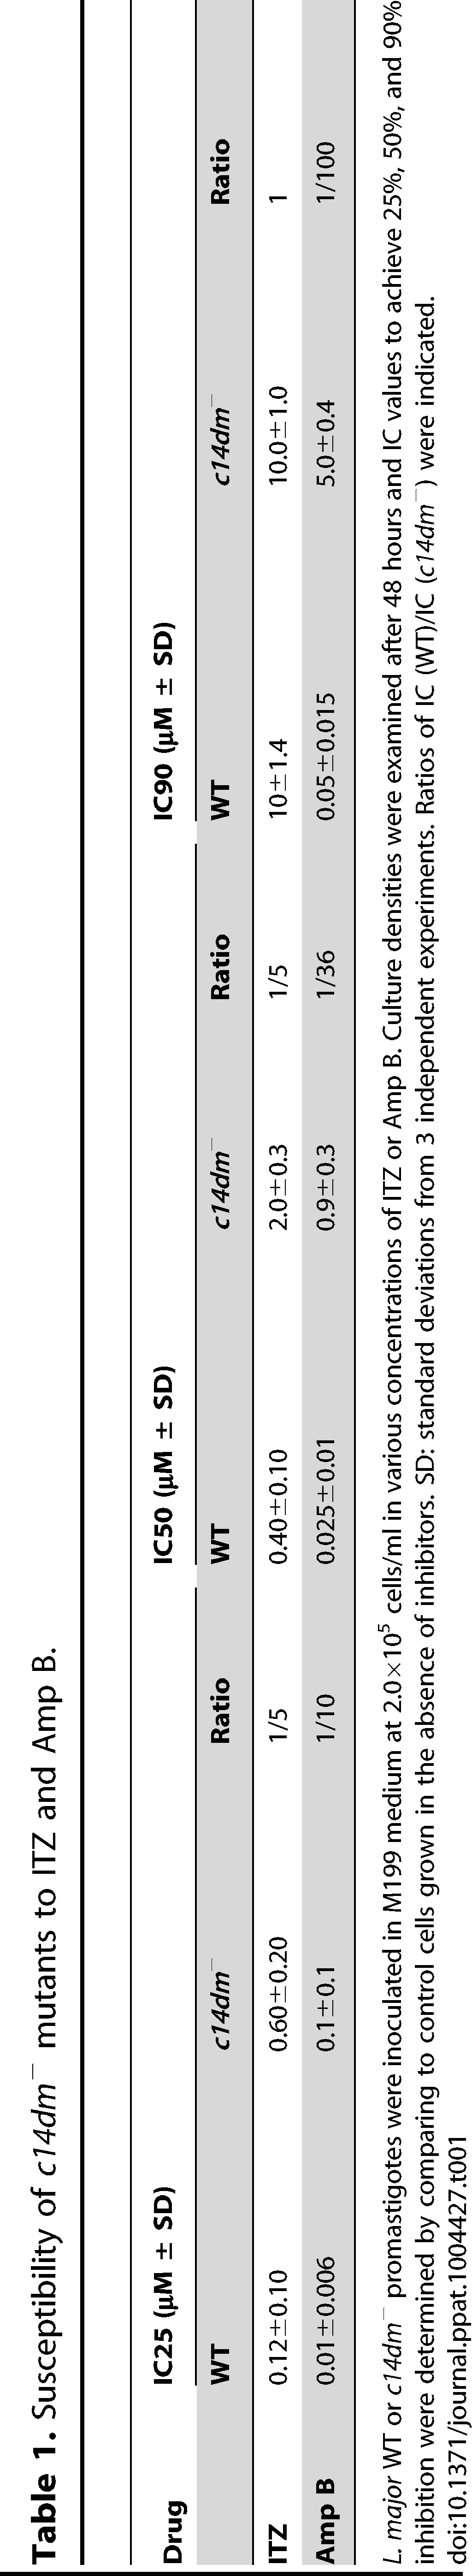 Susceptibility of <i>c14dm</i><sup>−</sup> mutants to ITZ and Amp B.